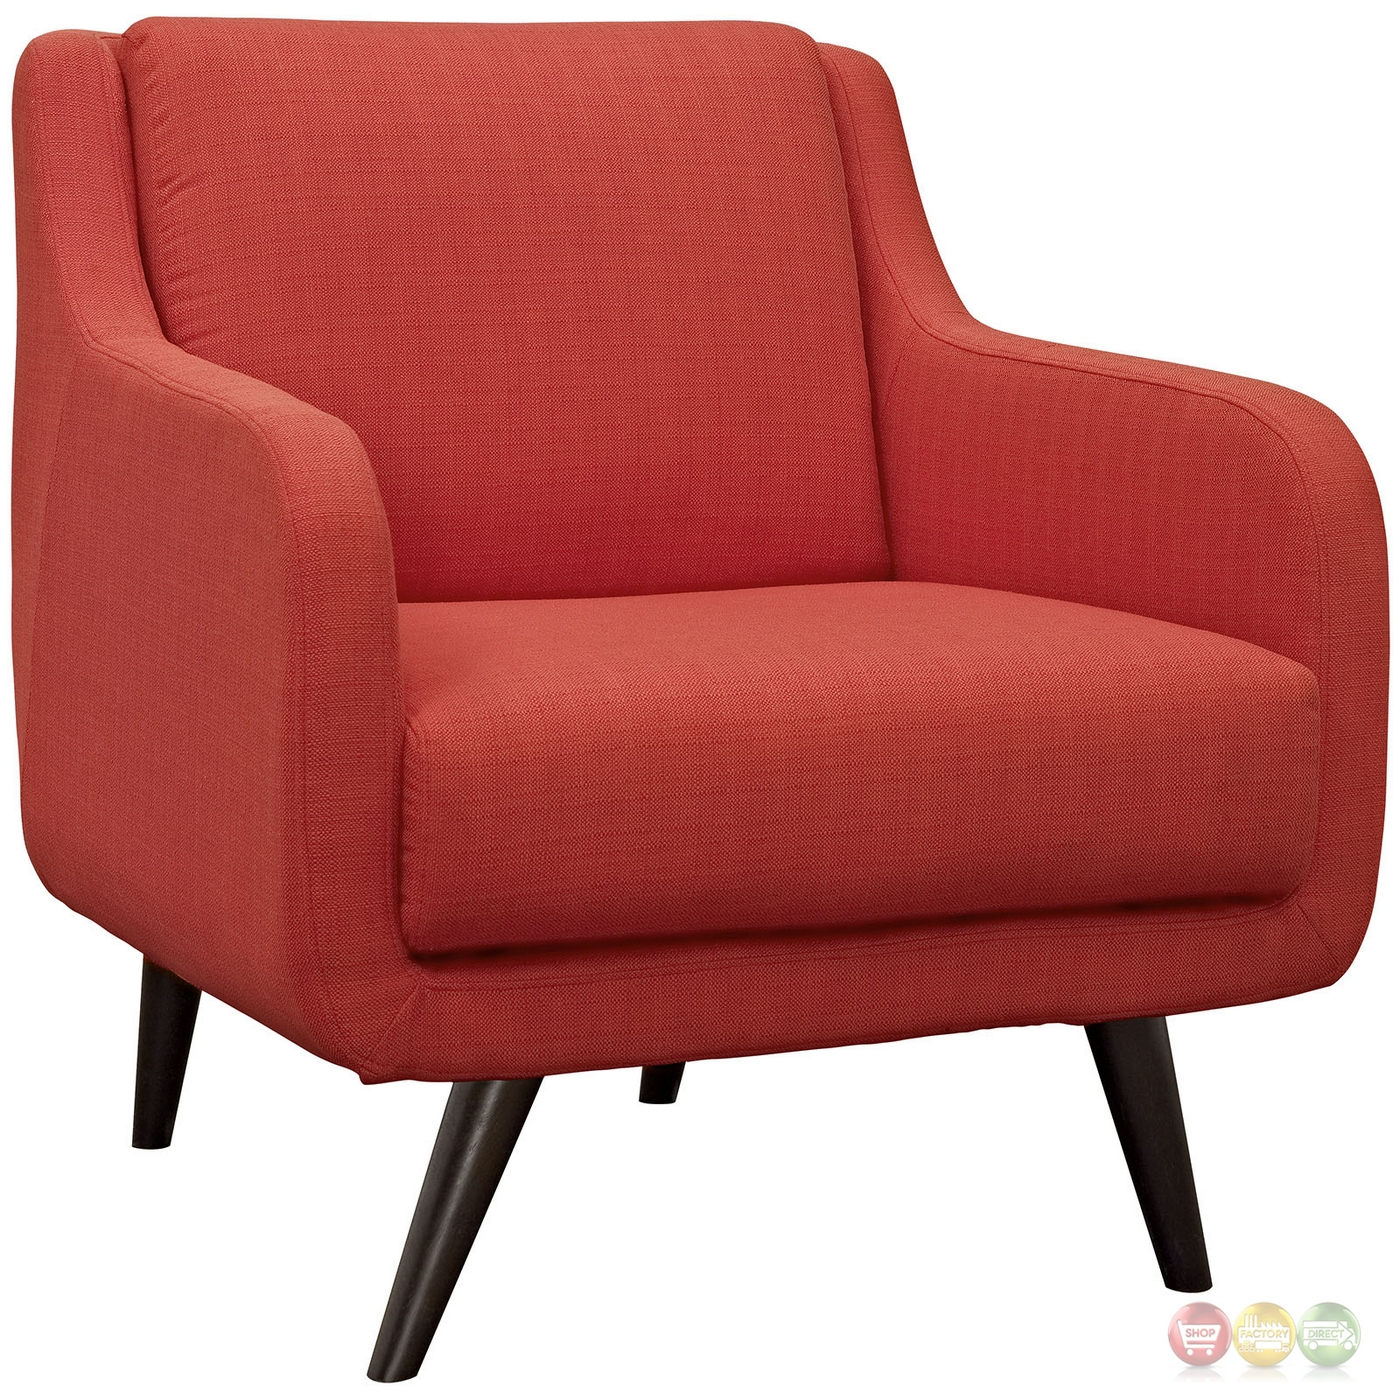 Verve mid century modern 2 pc upholstered sofa armchair for Mid century modern upholstered chair